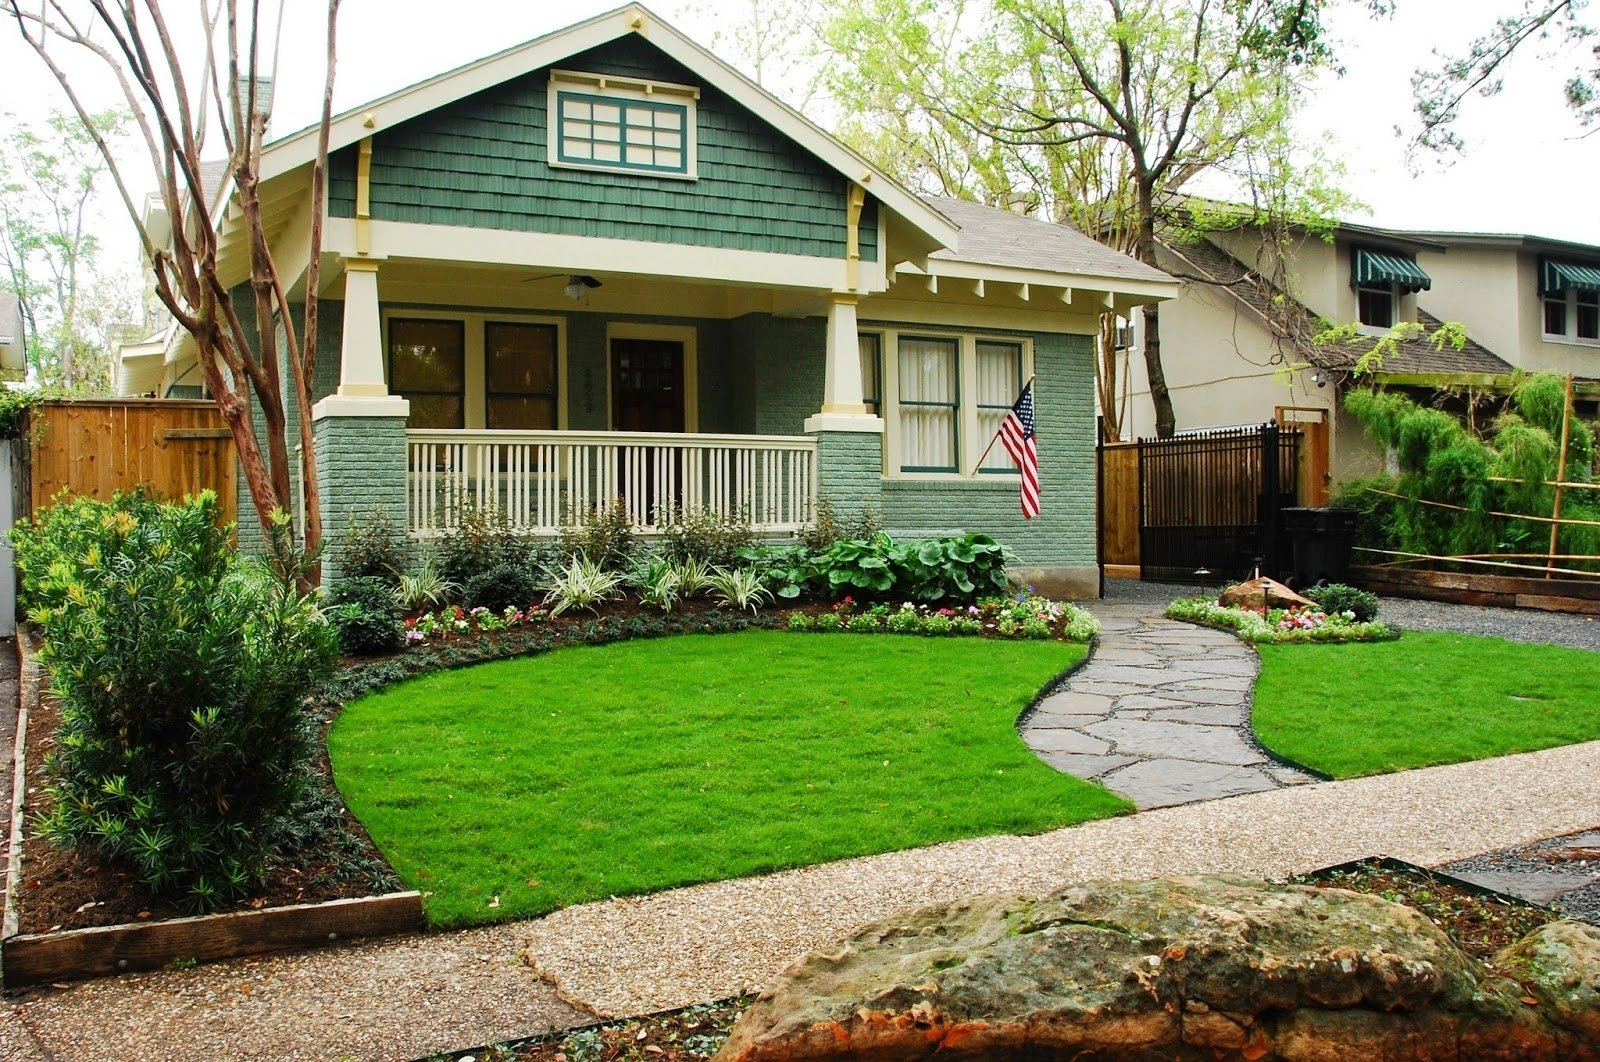 10 Spectacular Front Yard Landscaping Ideas For Small Homes amazing front yard landscaping ideas manitoba design small front 1 2021